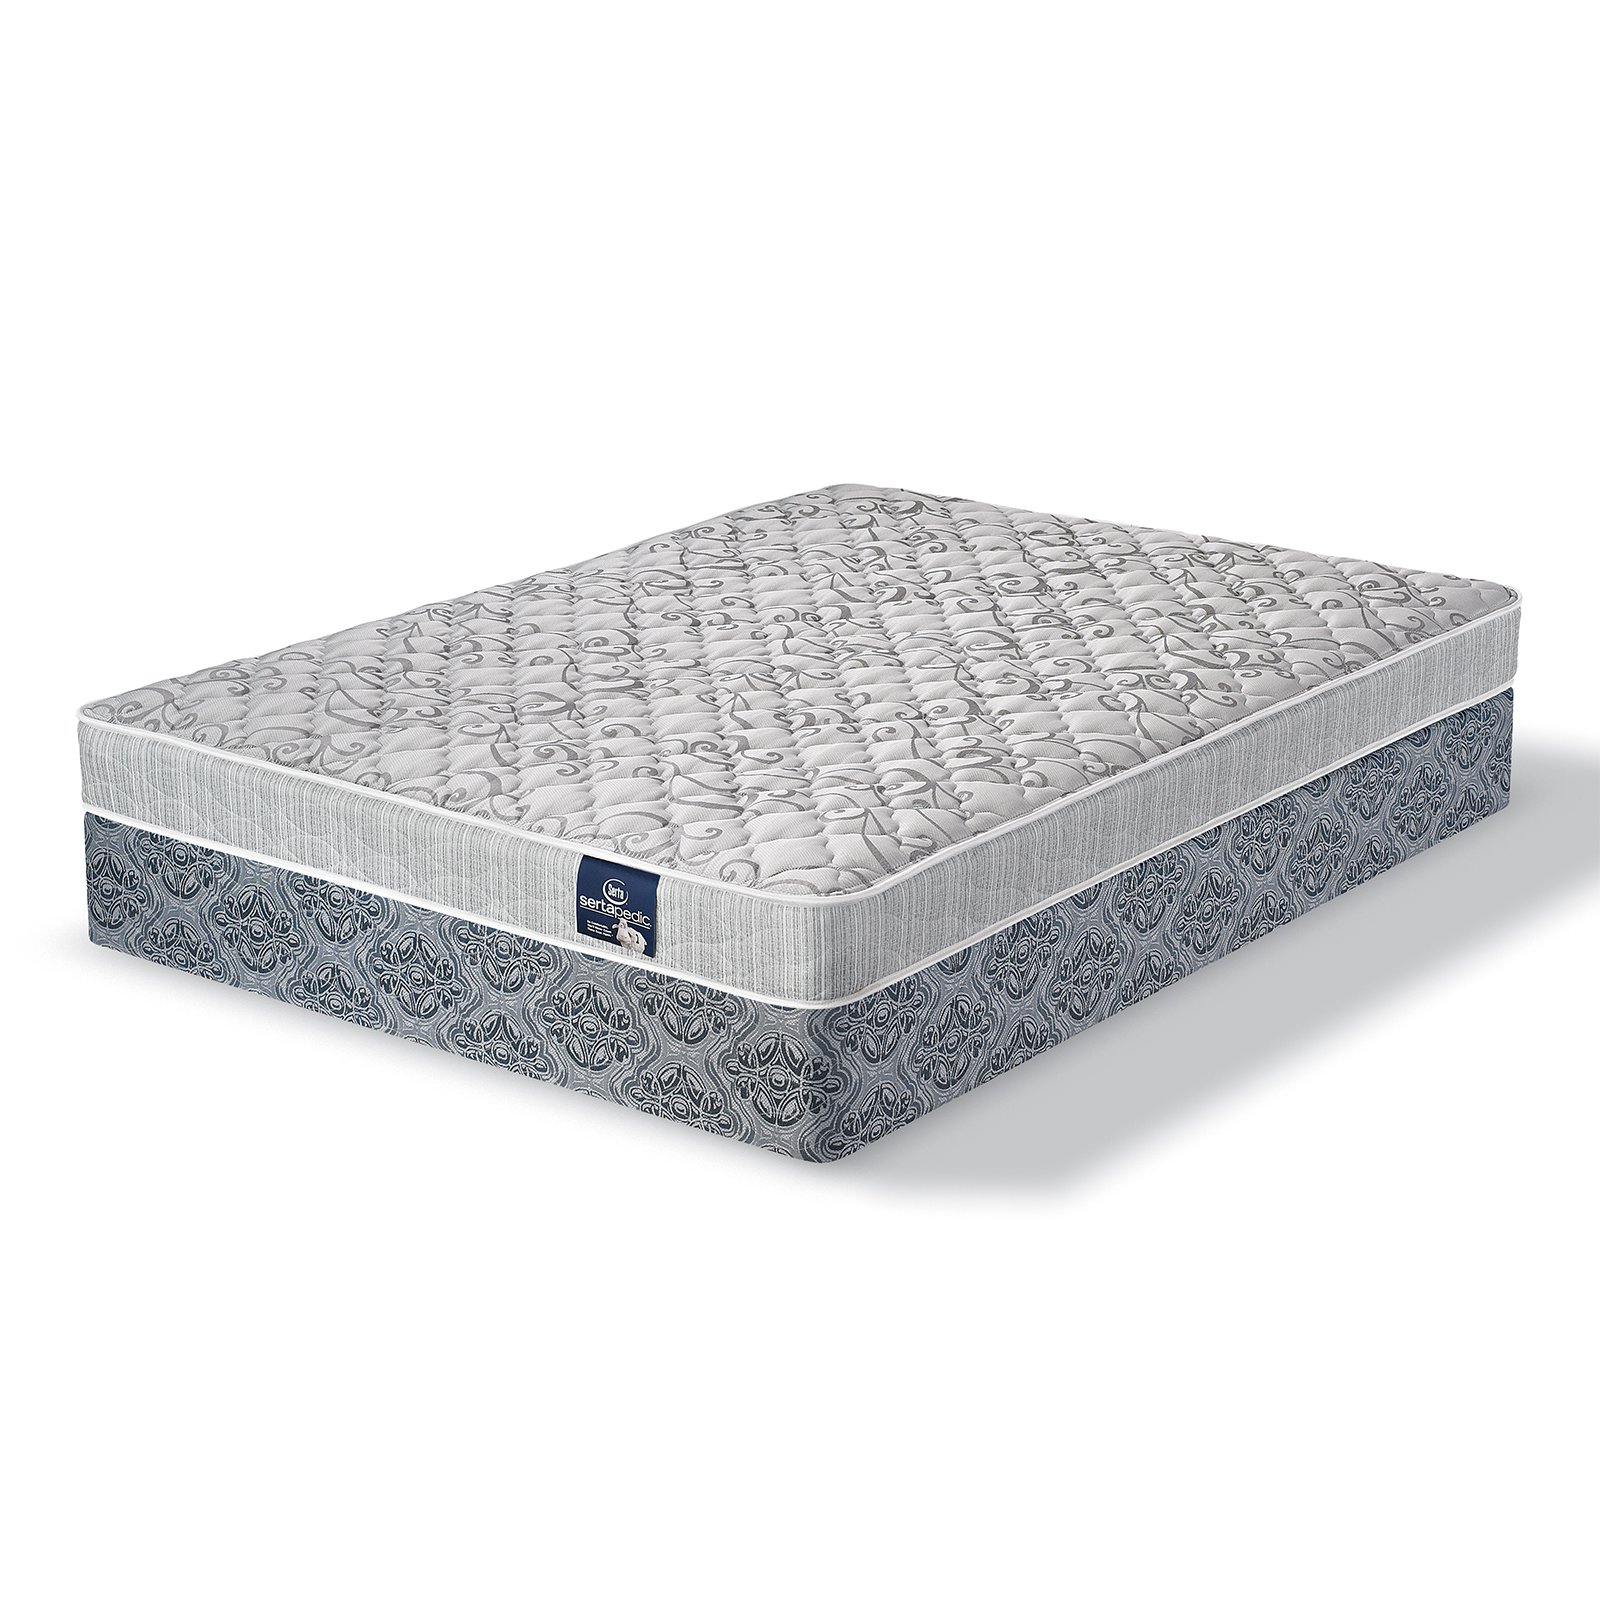 Low Profile Innerspring Mattress Serta Skyfield Twin Mattress Only